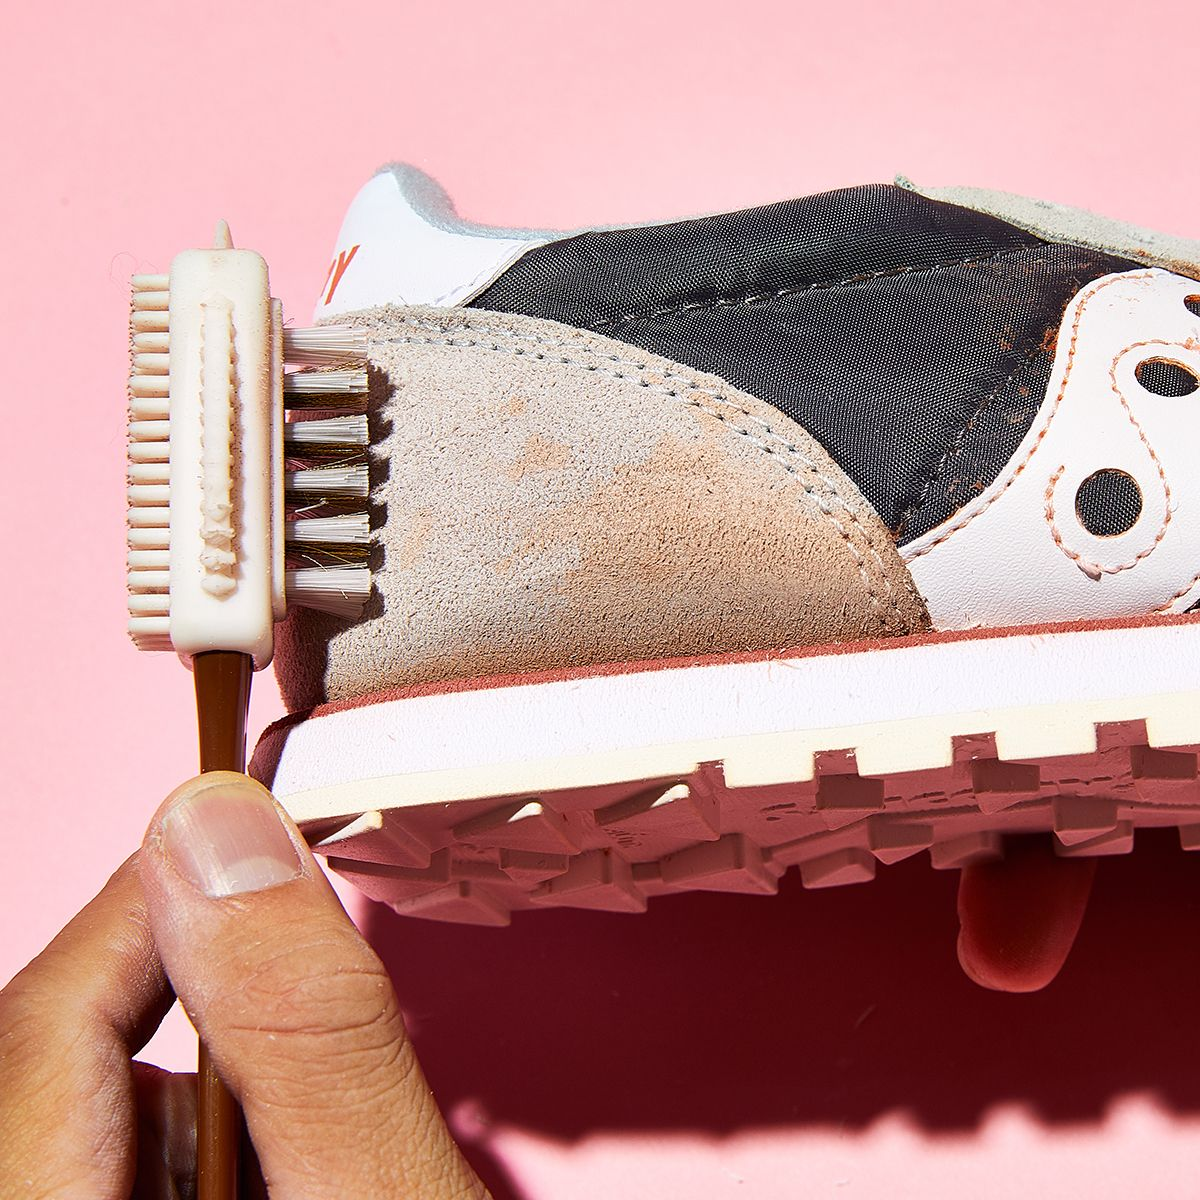 How To Clean White, Suede, Mesh Sneakers